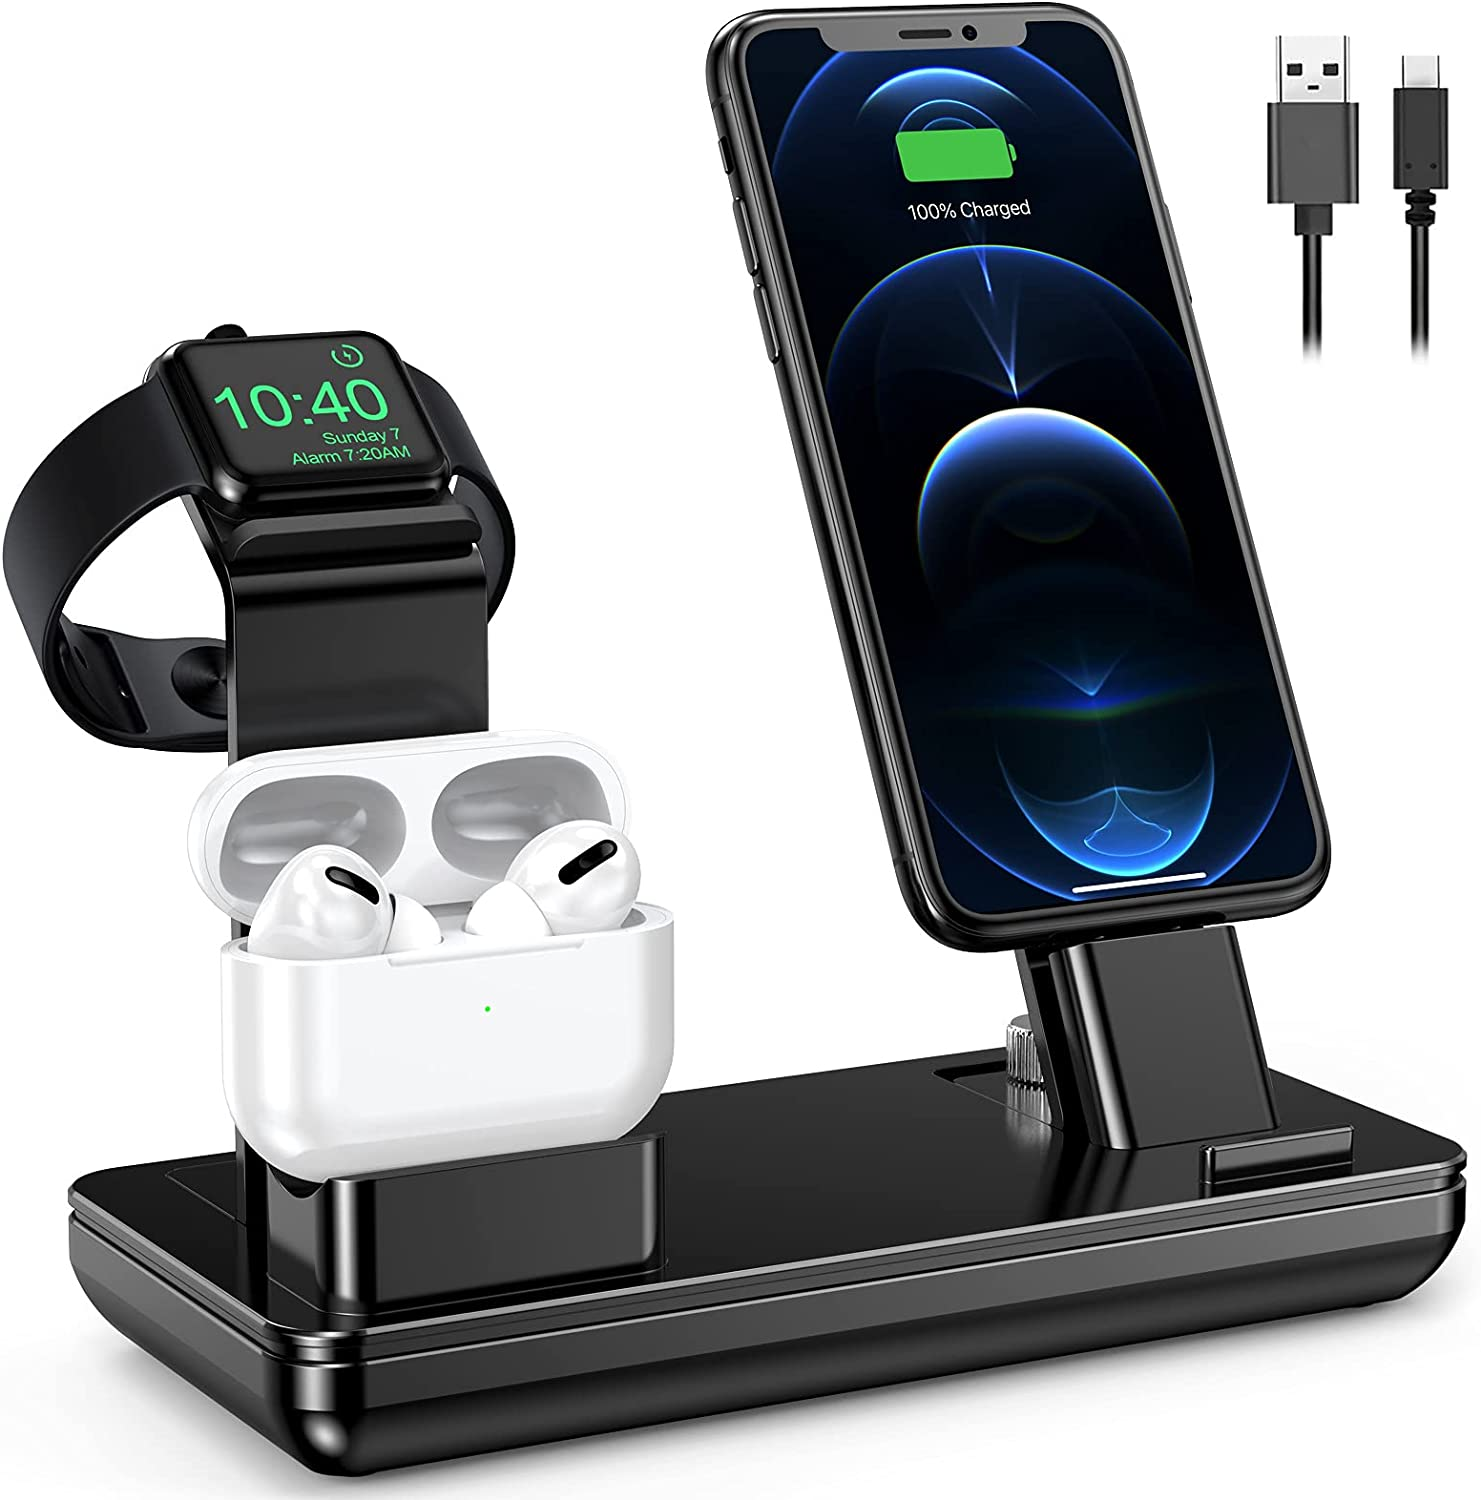 Charging Station for Apple Products, YoFeW 3 in 1 Charger Stand for Apple Watch, iWatch Series SE/6/5/4/3/2/1, Airpods Pro 2/1, iPhone 11 Series/Xs/X Max/XR/X/8/ 8P/7/7P/6S/6S Plus, Upgraded